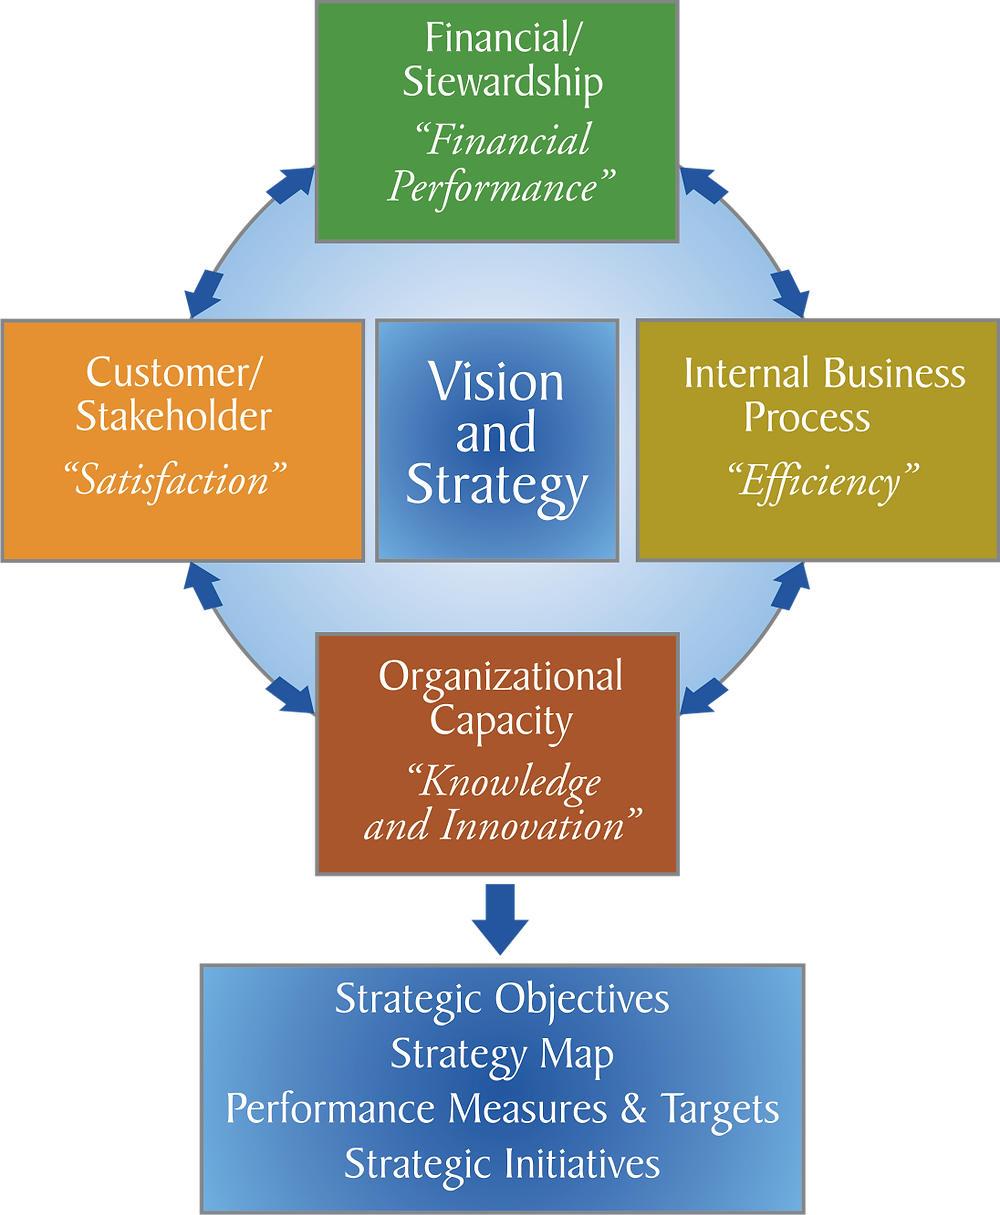 Balanced Scorecard Perspectives based on Vision and Strategy